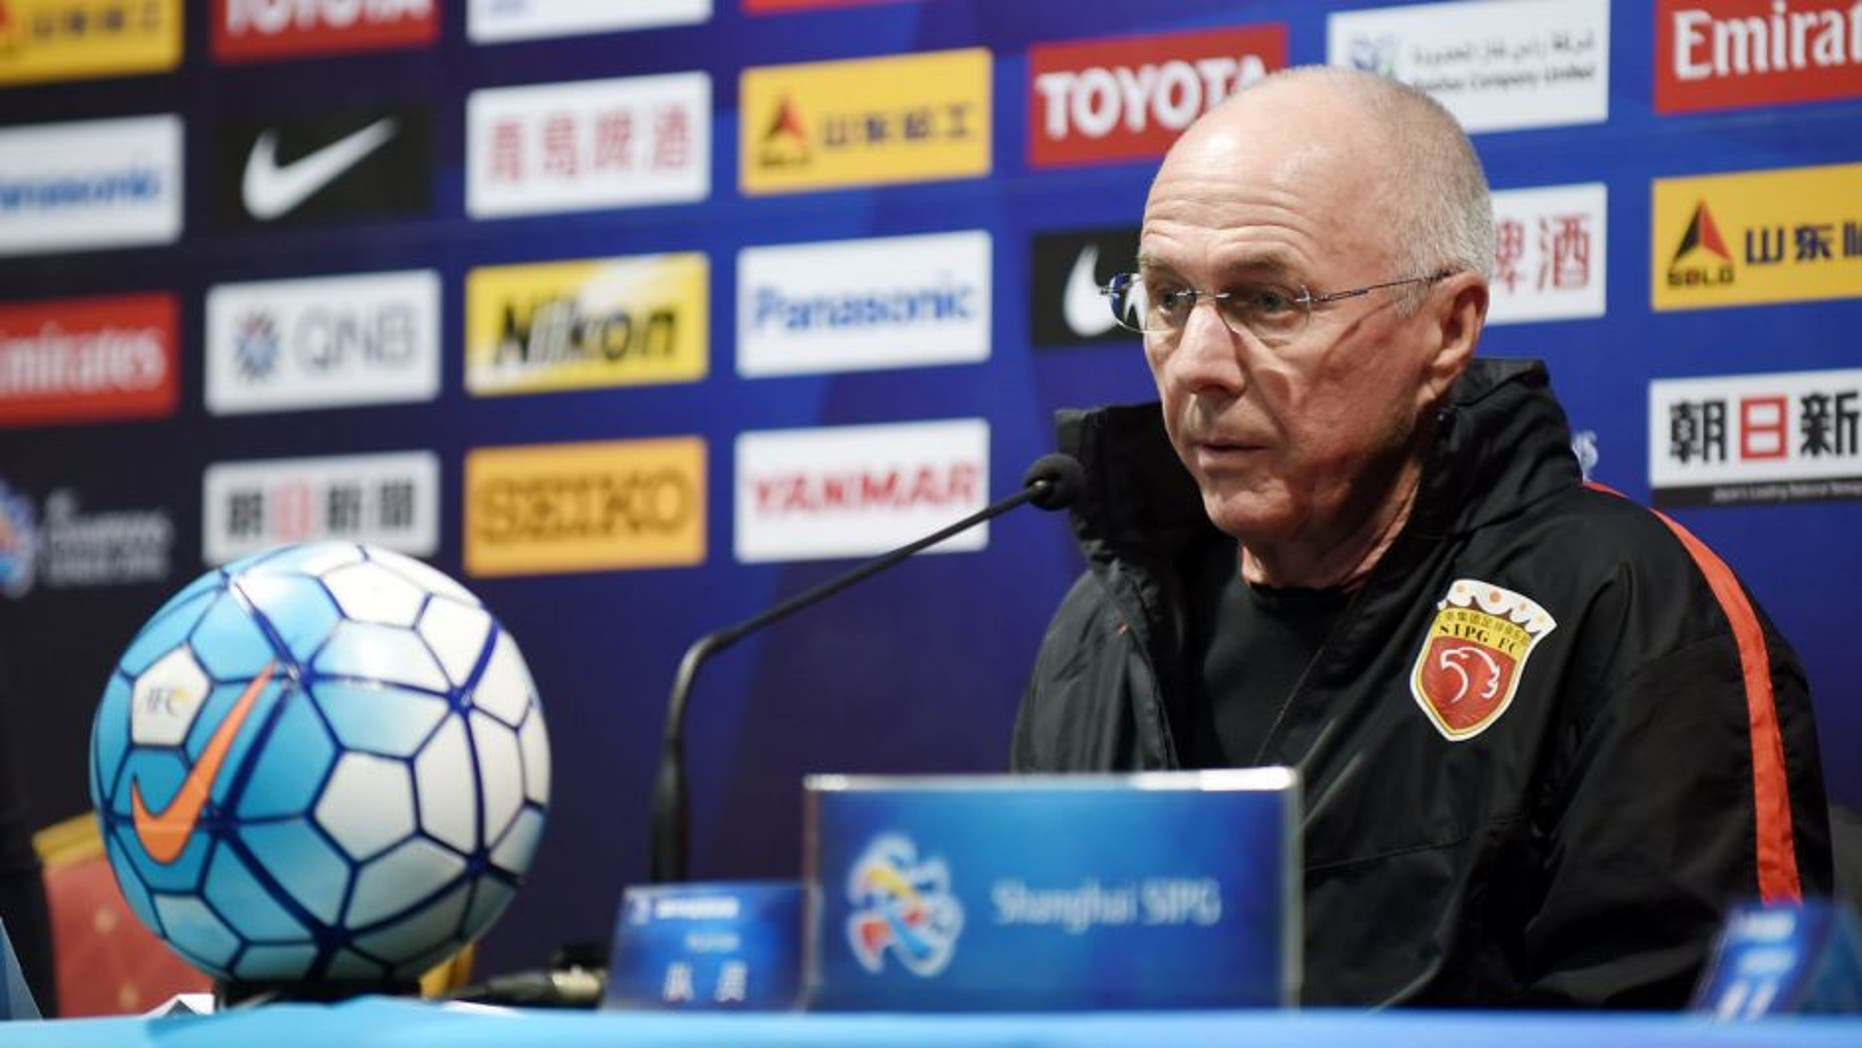 SHANGHAI, CHINA - FEBRUARY 08: (CHINA OUT) Head coach Sven-Goran Eriksson of Shanghai SIPG attends a press conference ahead of the third round match of the preliminaries in AFC Champions League 2016 on February 8, 2016 in Shanghai, China. (Photo by ChinaFotoPress/ChinaFotoPress via Getty Images)